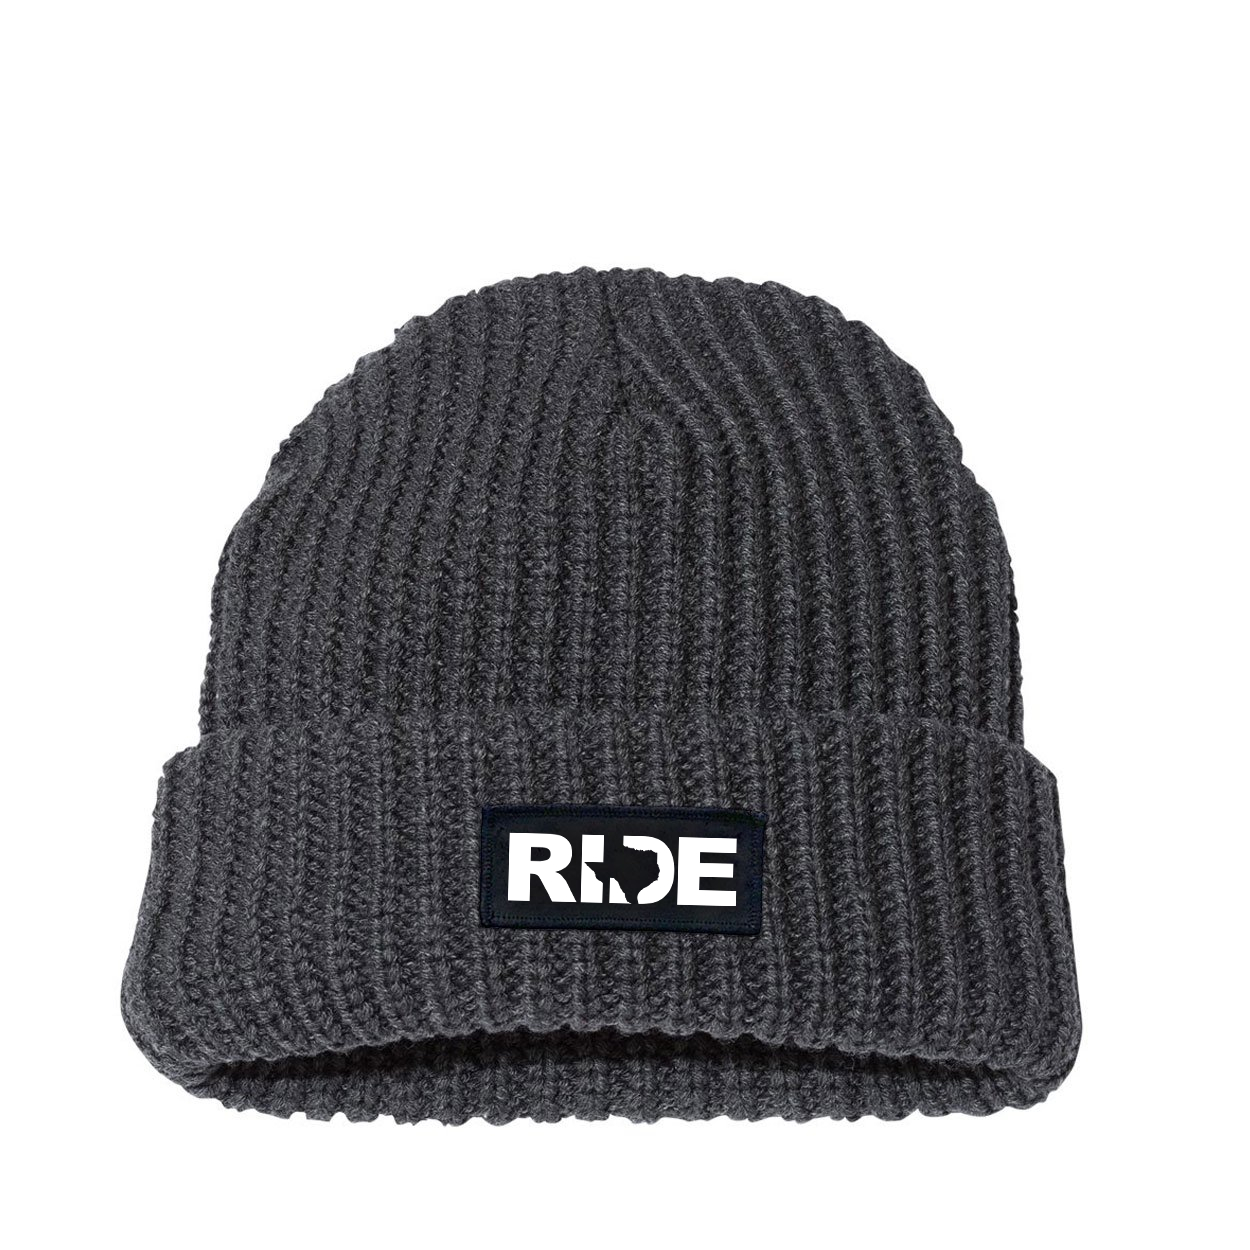 Ride Texas Night Out Woven Patch Roll Up Jumbo Chunky Knit Beanie Charcoal (White Logo)